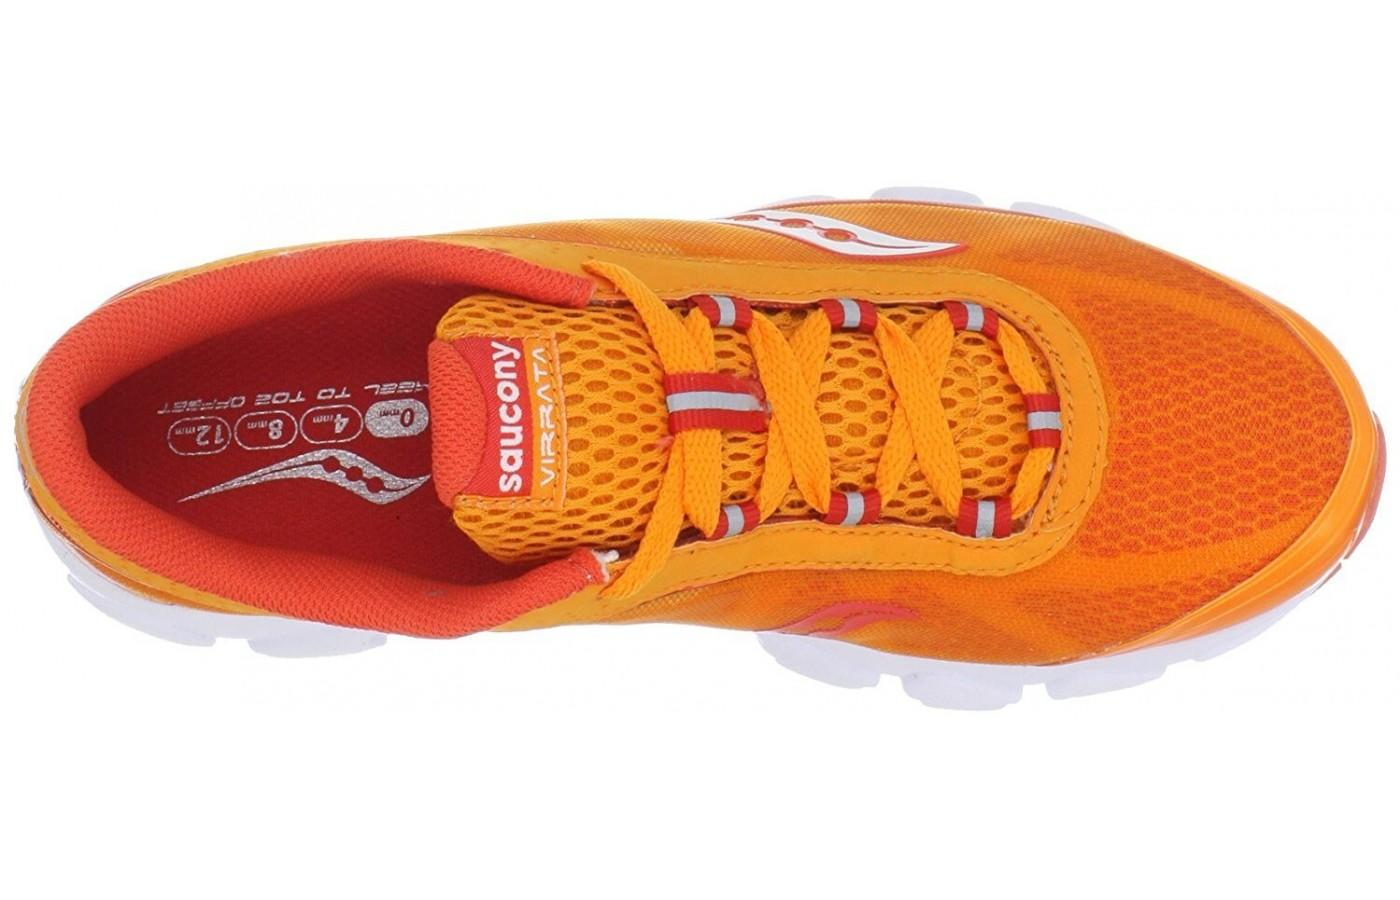 the upper of the Saucony Virrata is made of a seamless breathable mono mesh